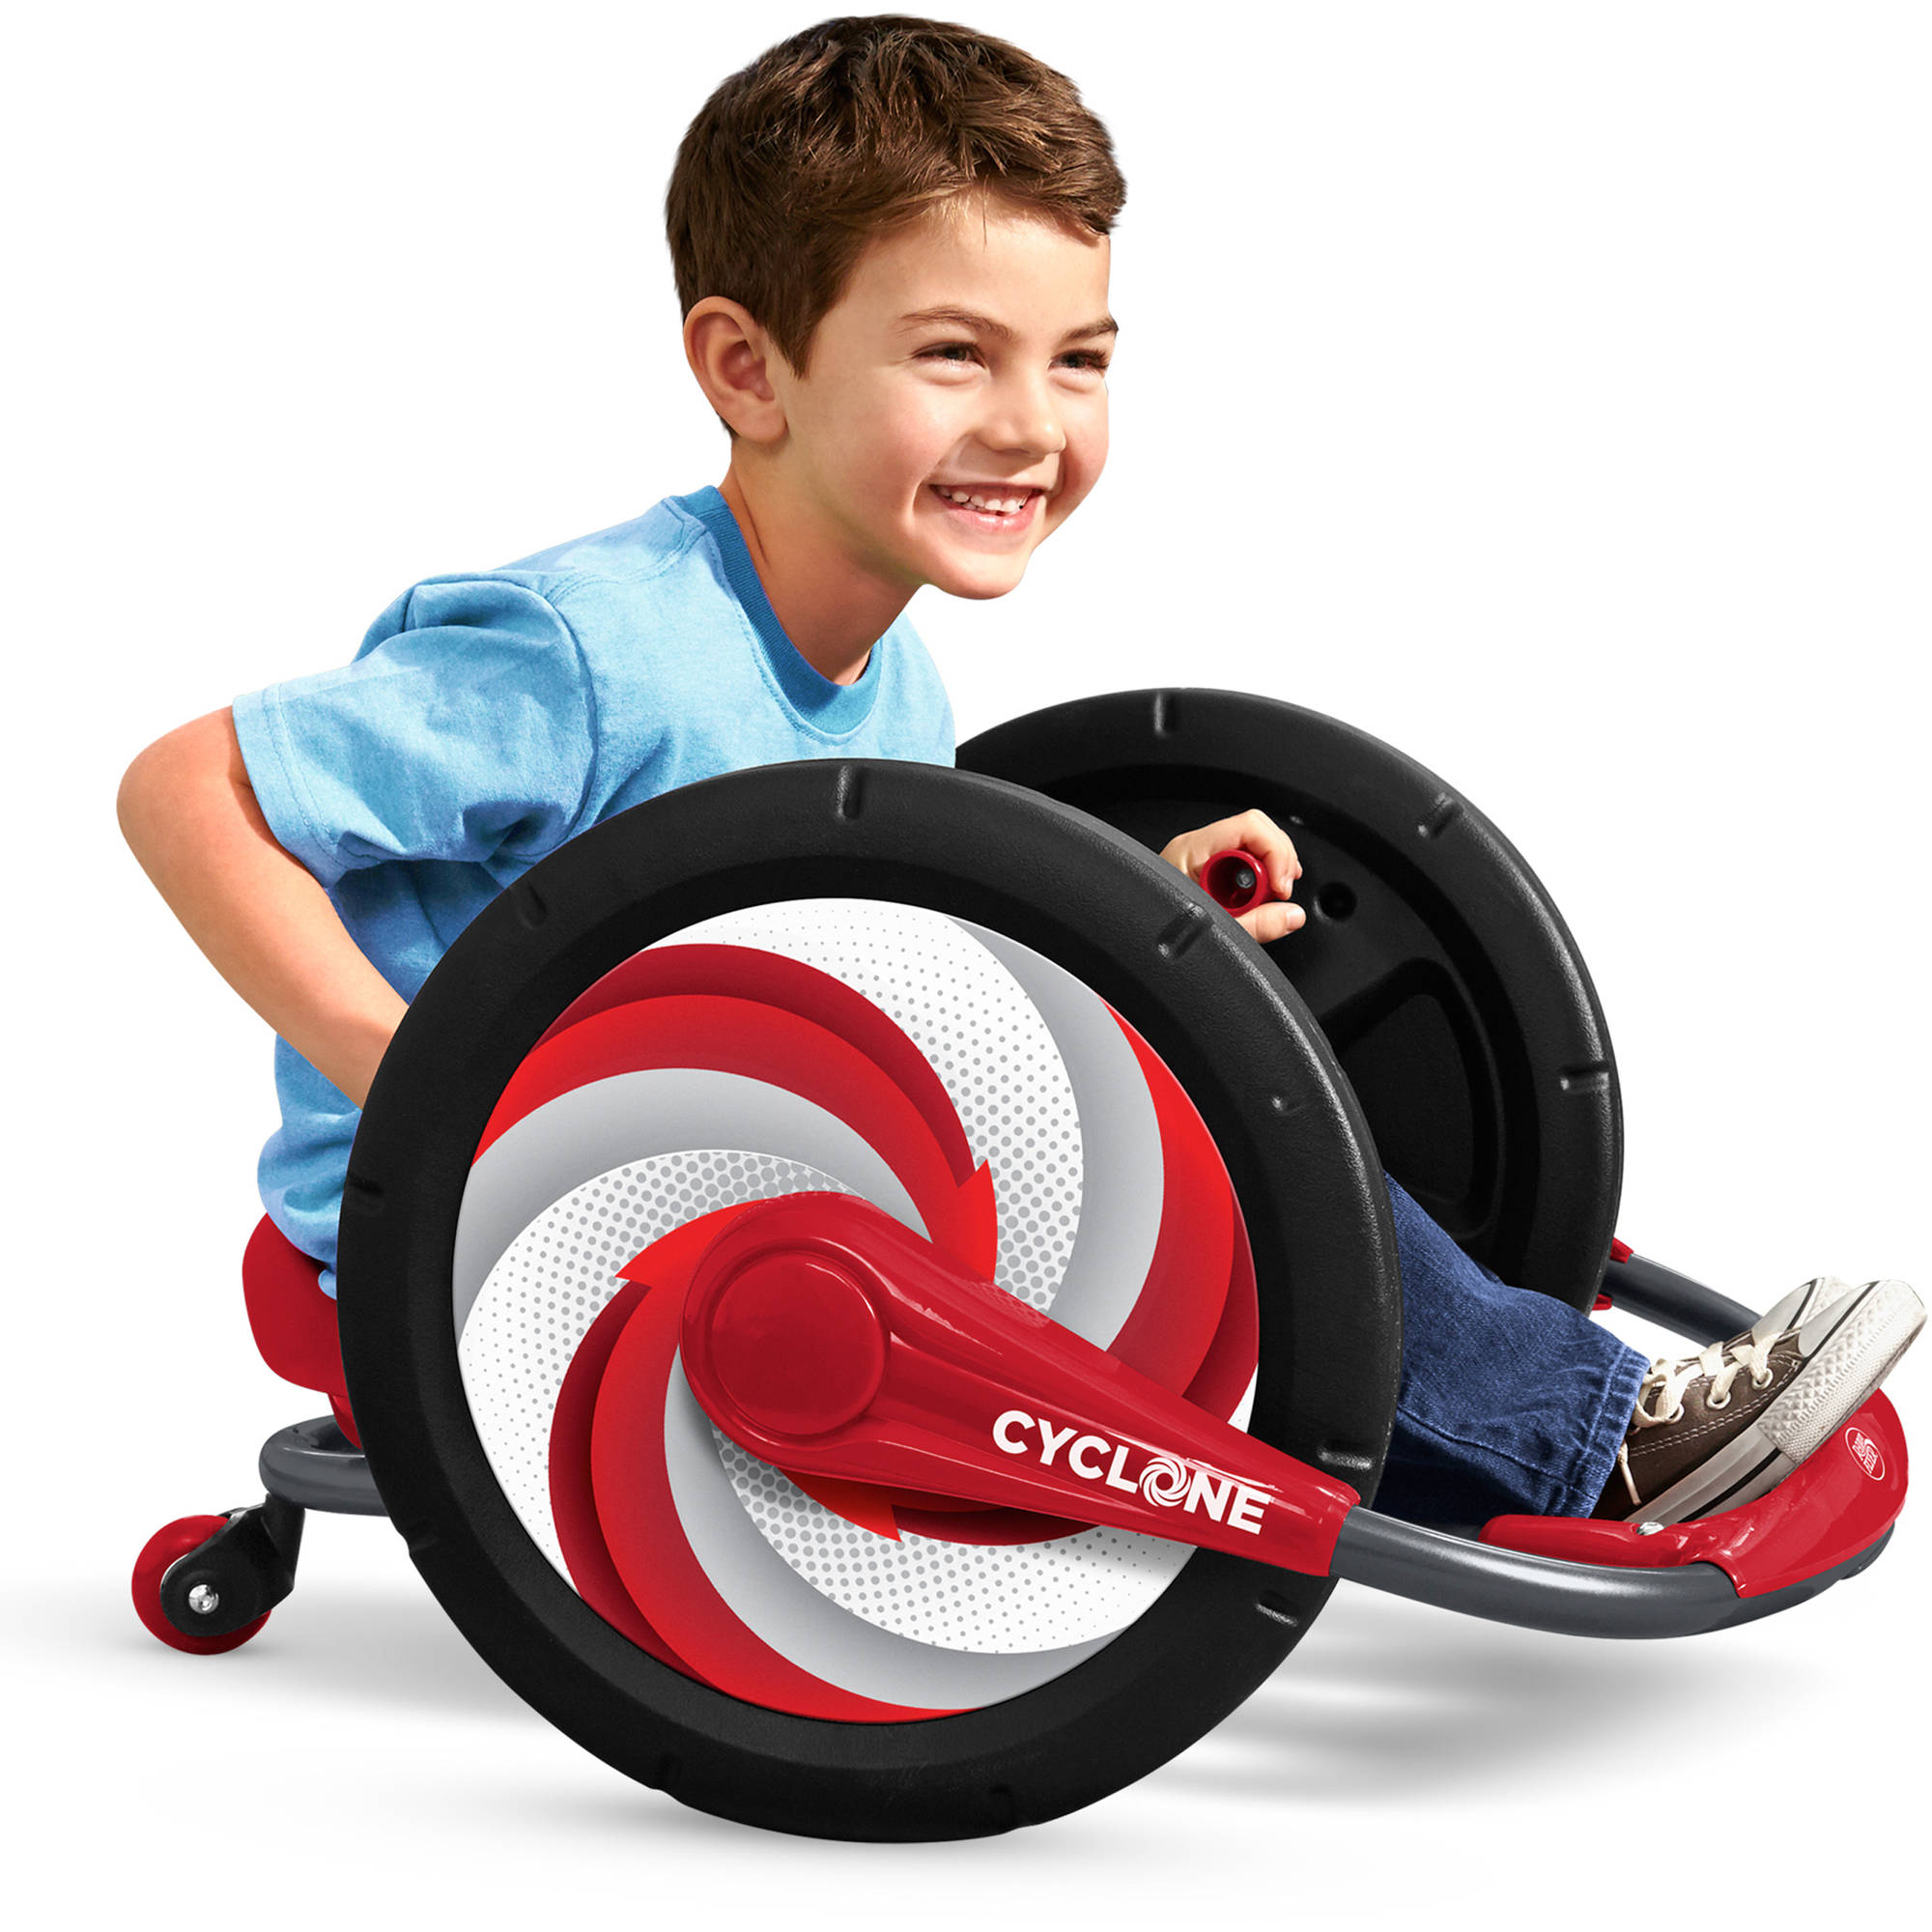 Radio Flyer Cyclone Ride Walmart